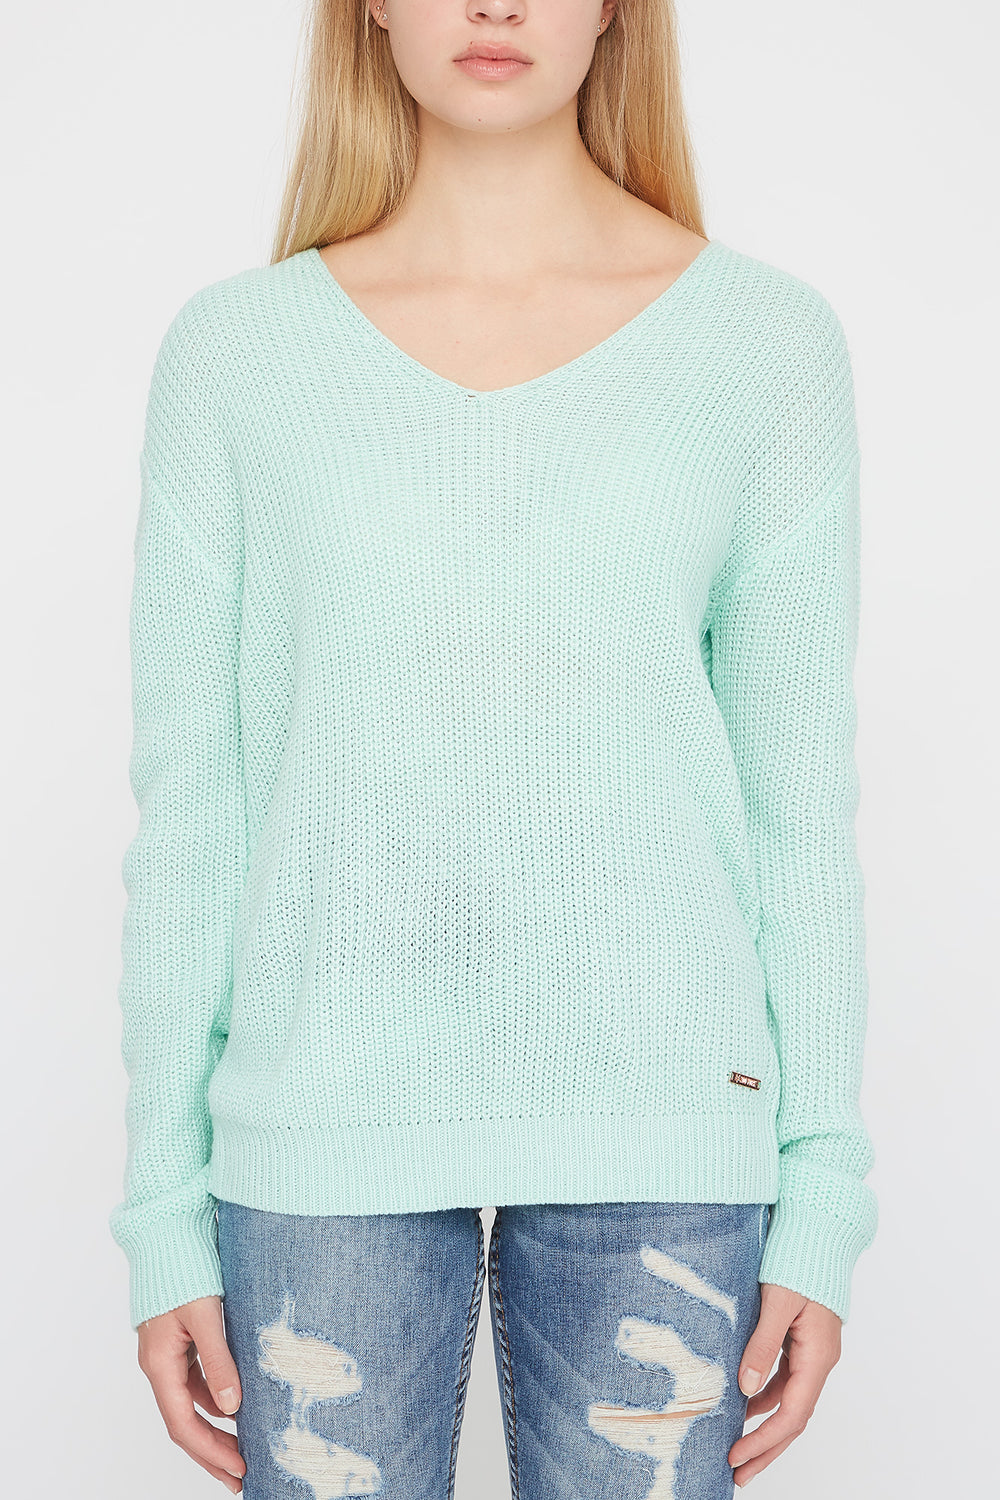 Zoo York Womens Knit Back Knot Sweater Sage